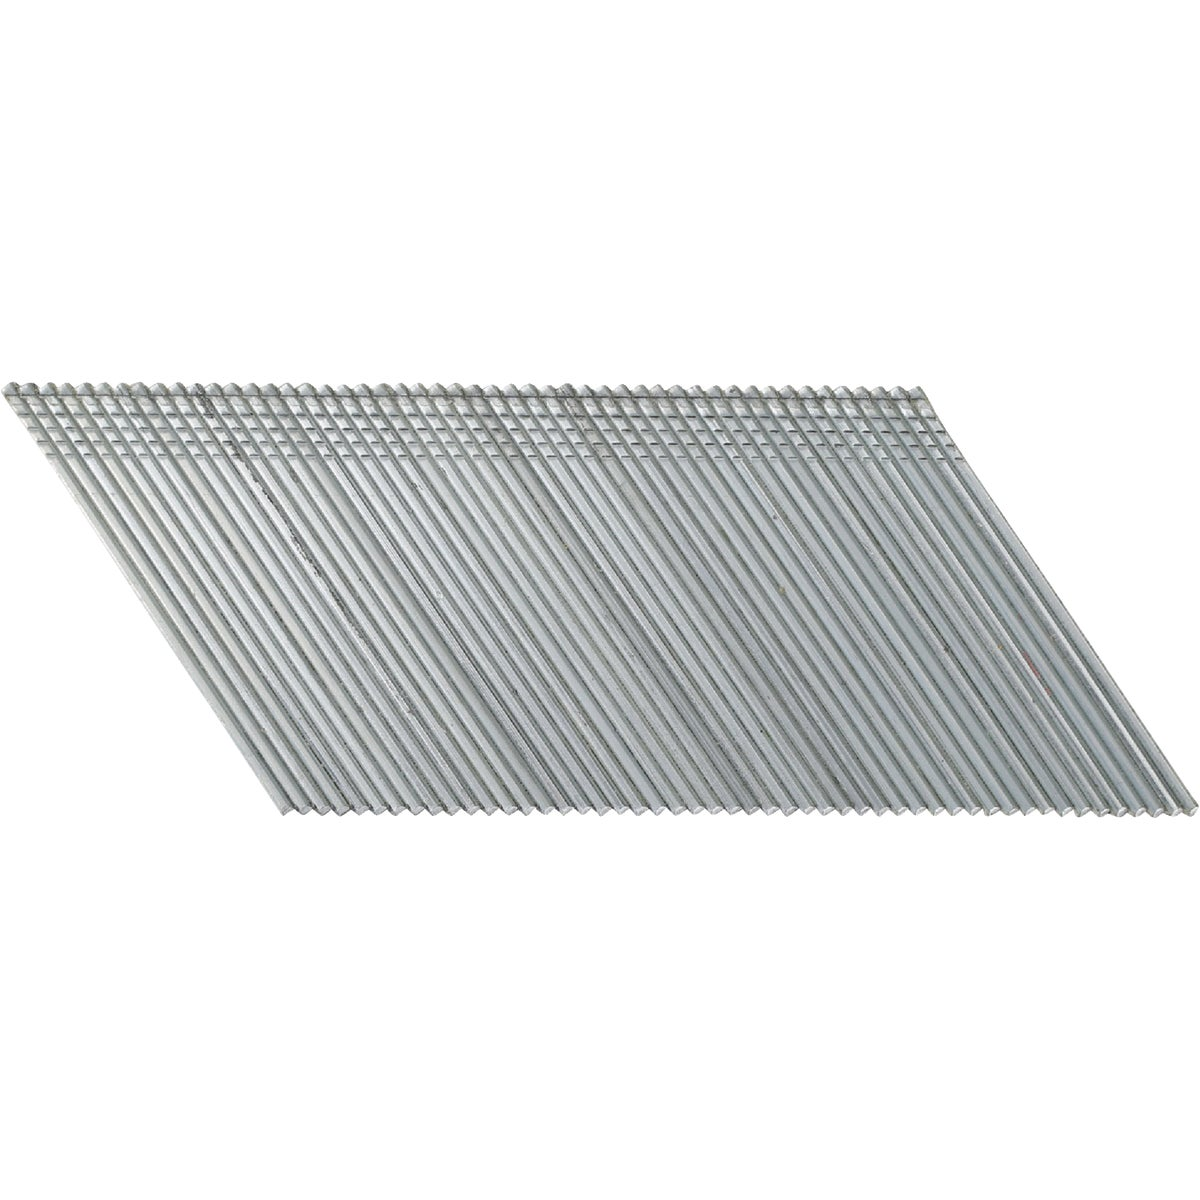 "2""FINISH NAIL GALVANIZED - PDA15200G by Black Decker  Pc"